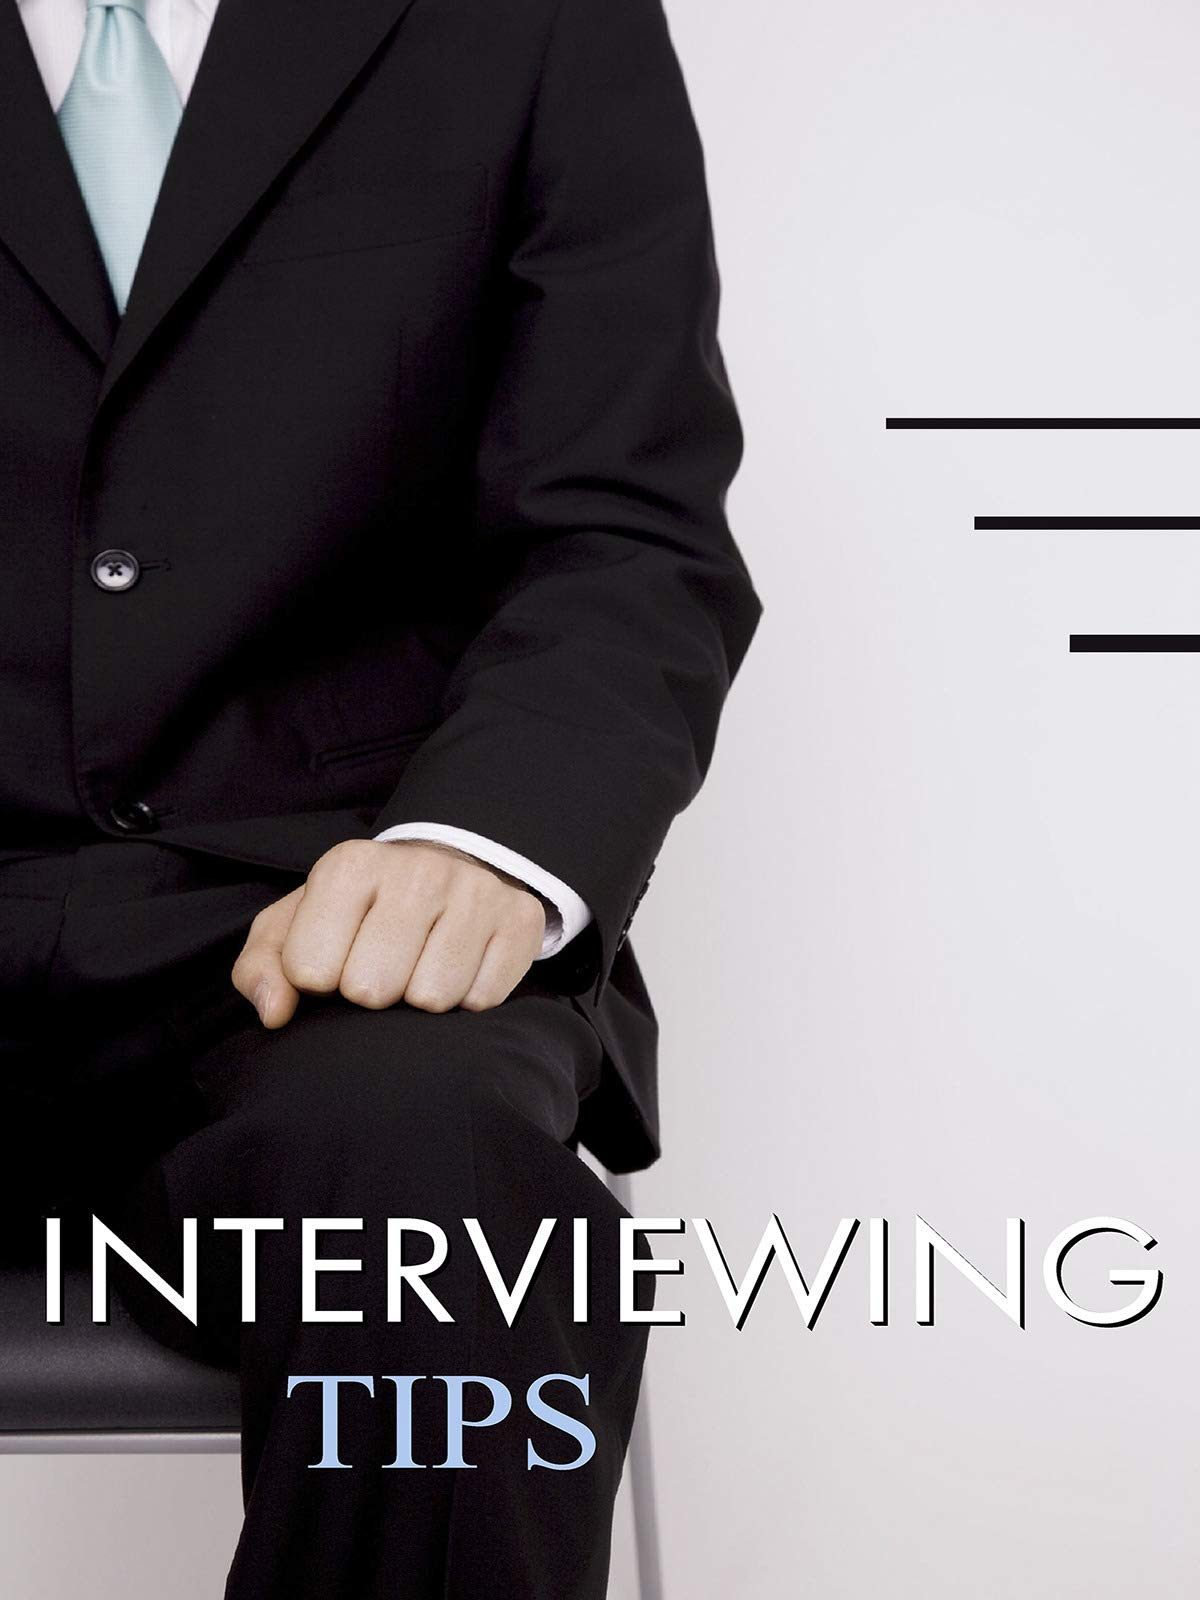 Business Management & HR Training - Interview Tips - Preparation & Success to Succeed in an Interview